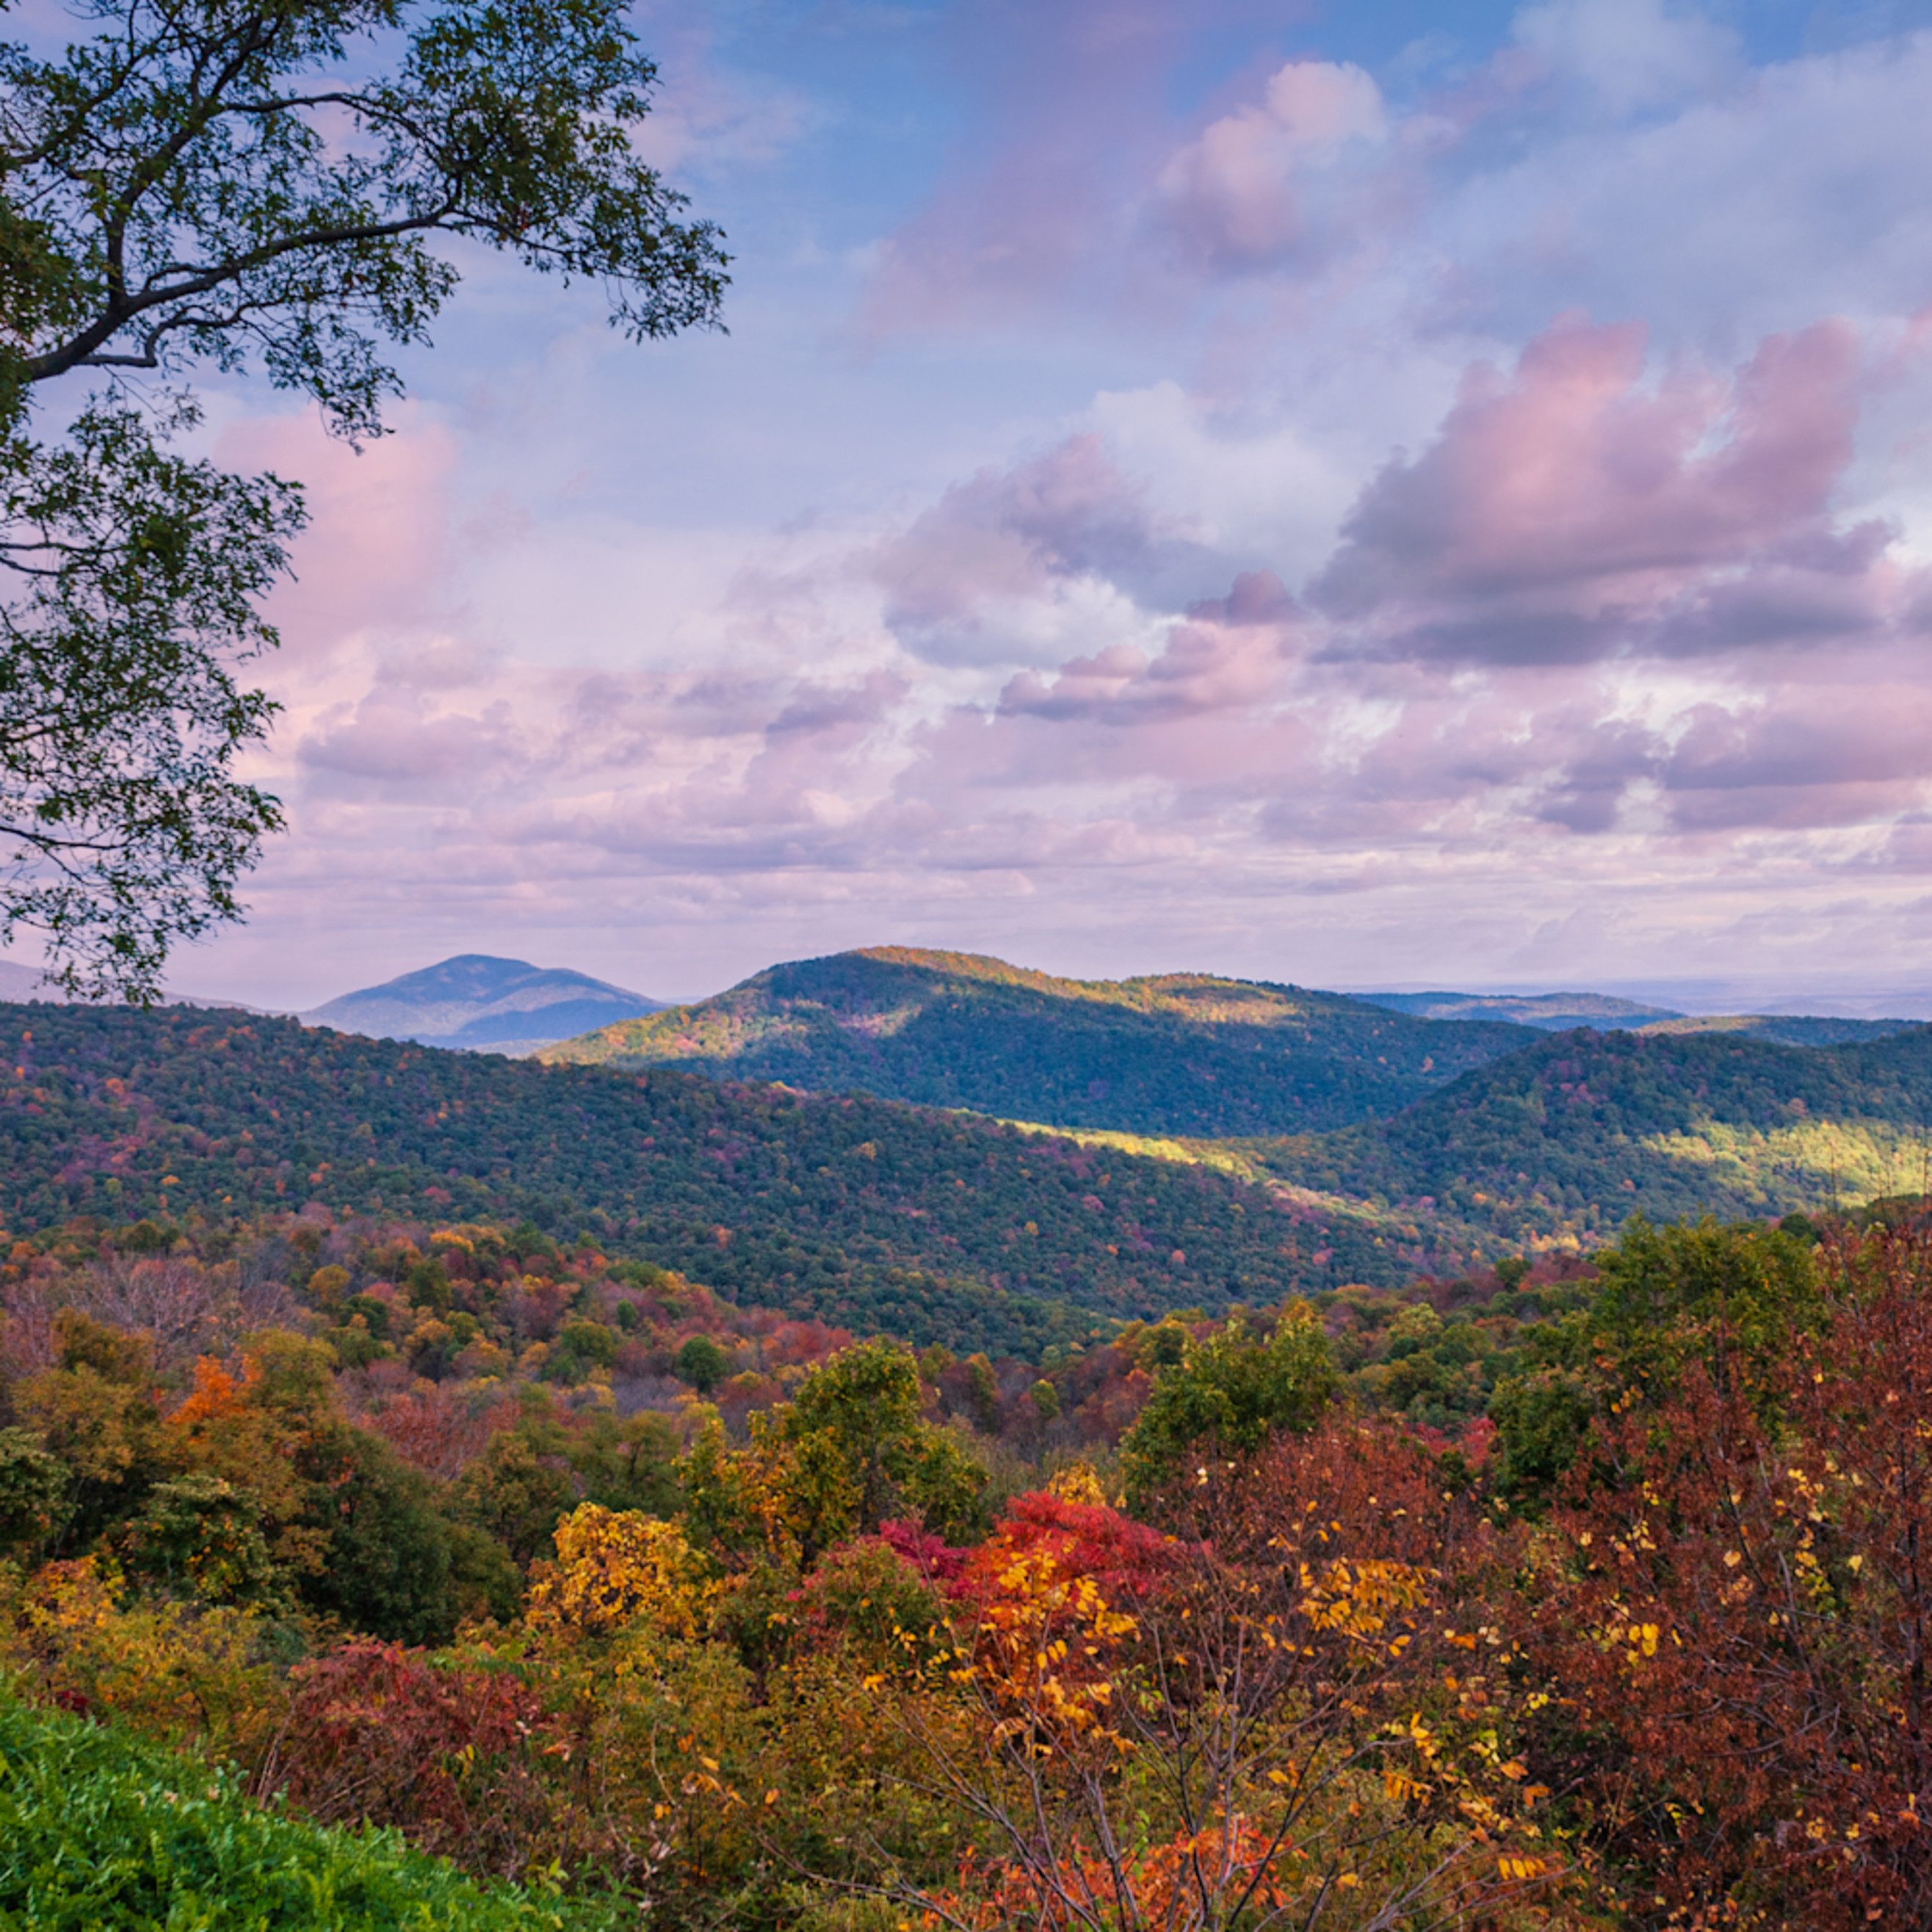 Early fall in the shenandoah mountains lxbxdu